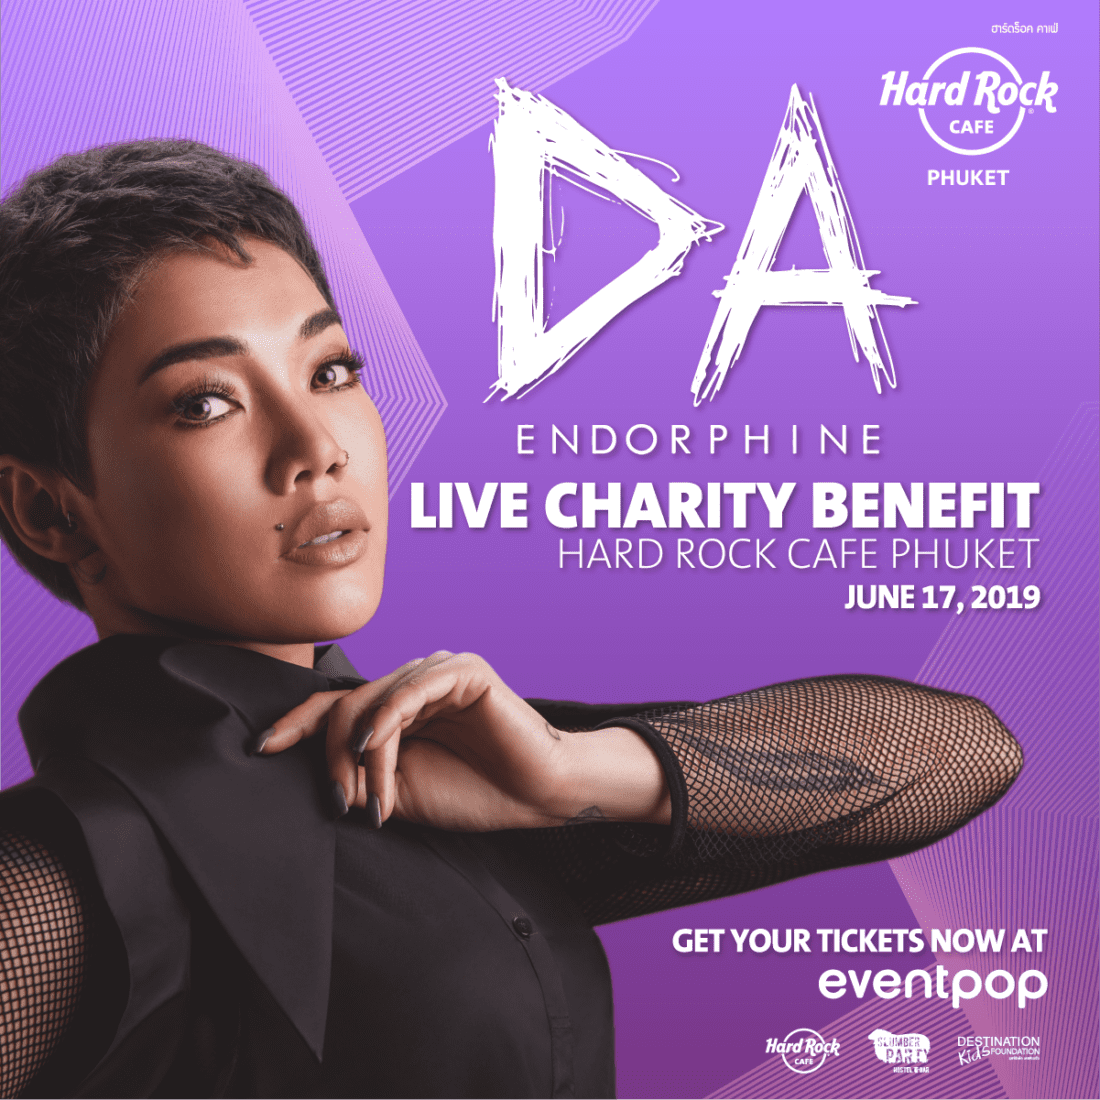 Hard Rock Café Phuket hosts charity concert on June 17 featuring 'Da Endorphine' | News by Thaiger